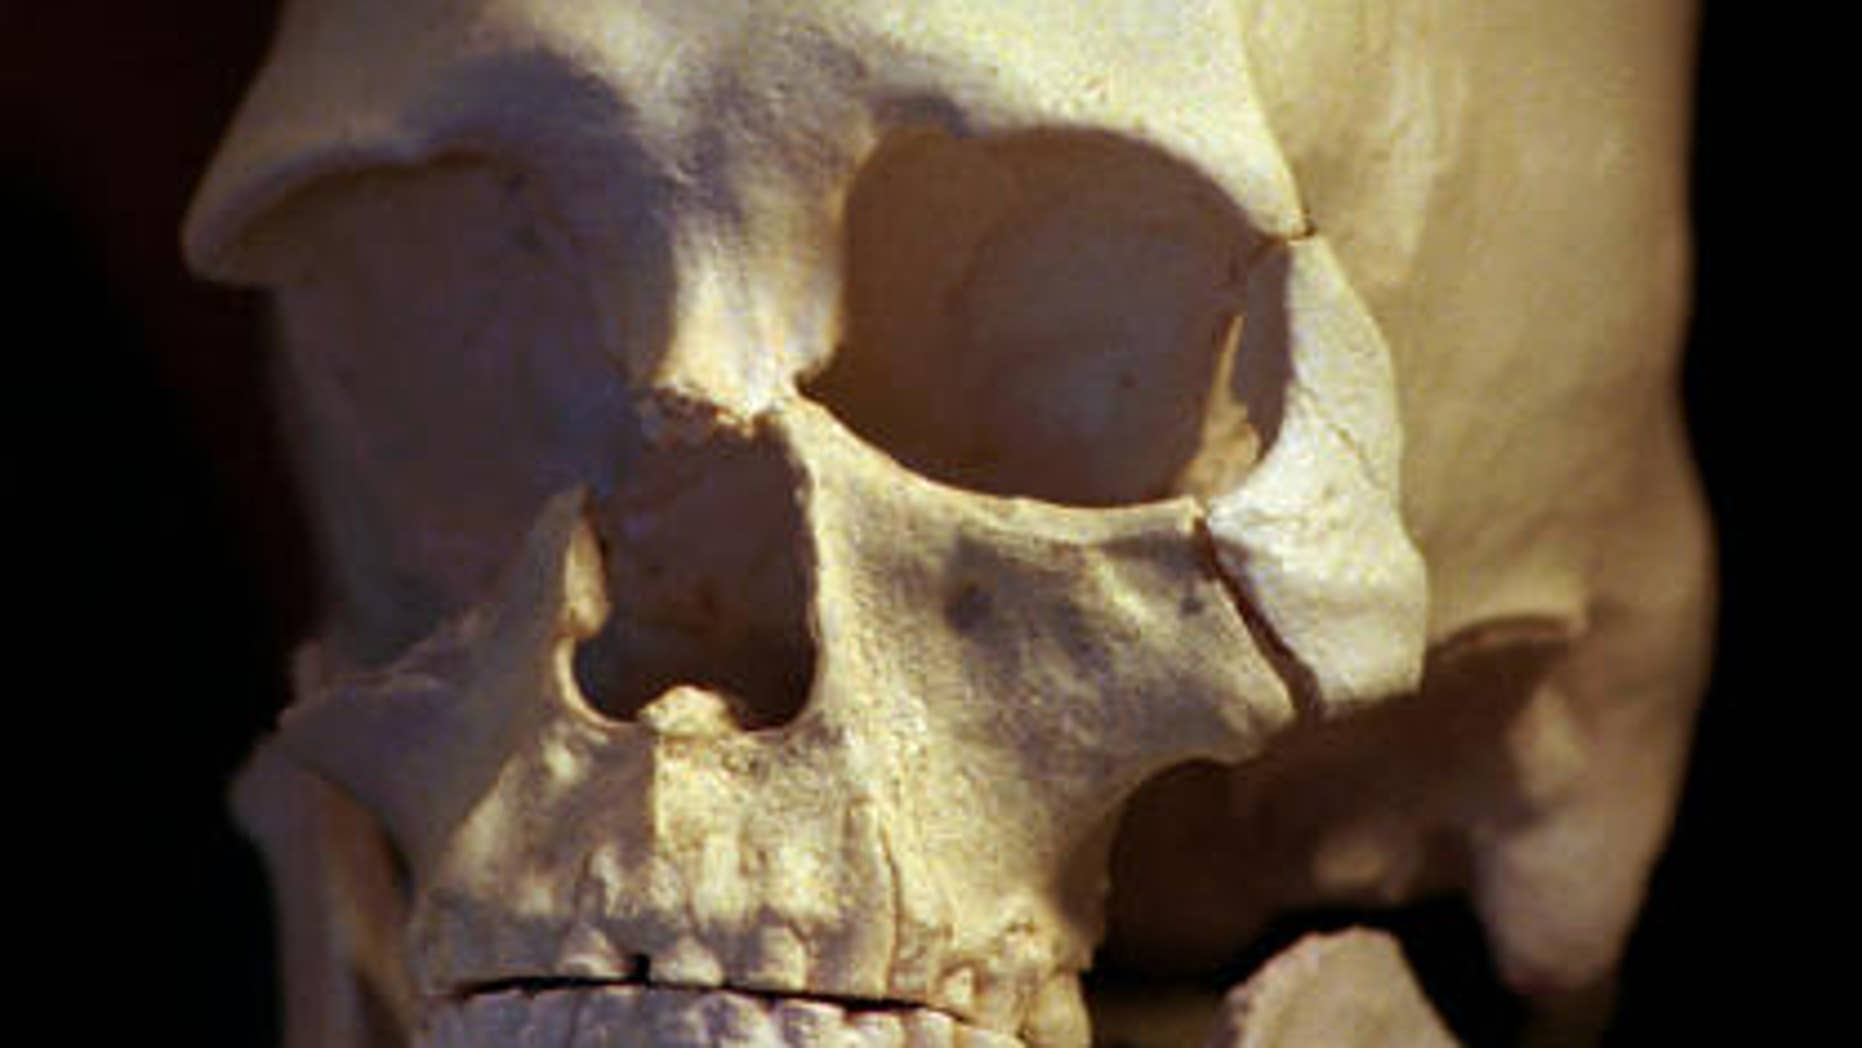 File photo: This July 24,1997 photo a plastic casting of the skull from the bones known as Kennewick Man, is shown in in Richland, Wash. (AP Photo/Elaine Thompson)